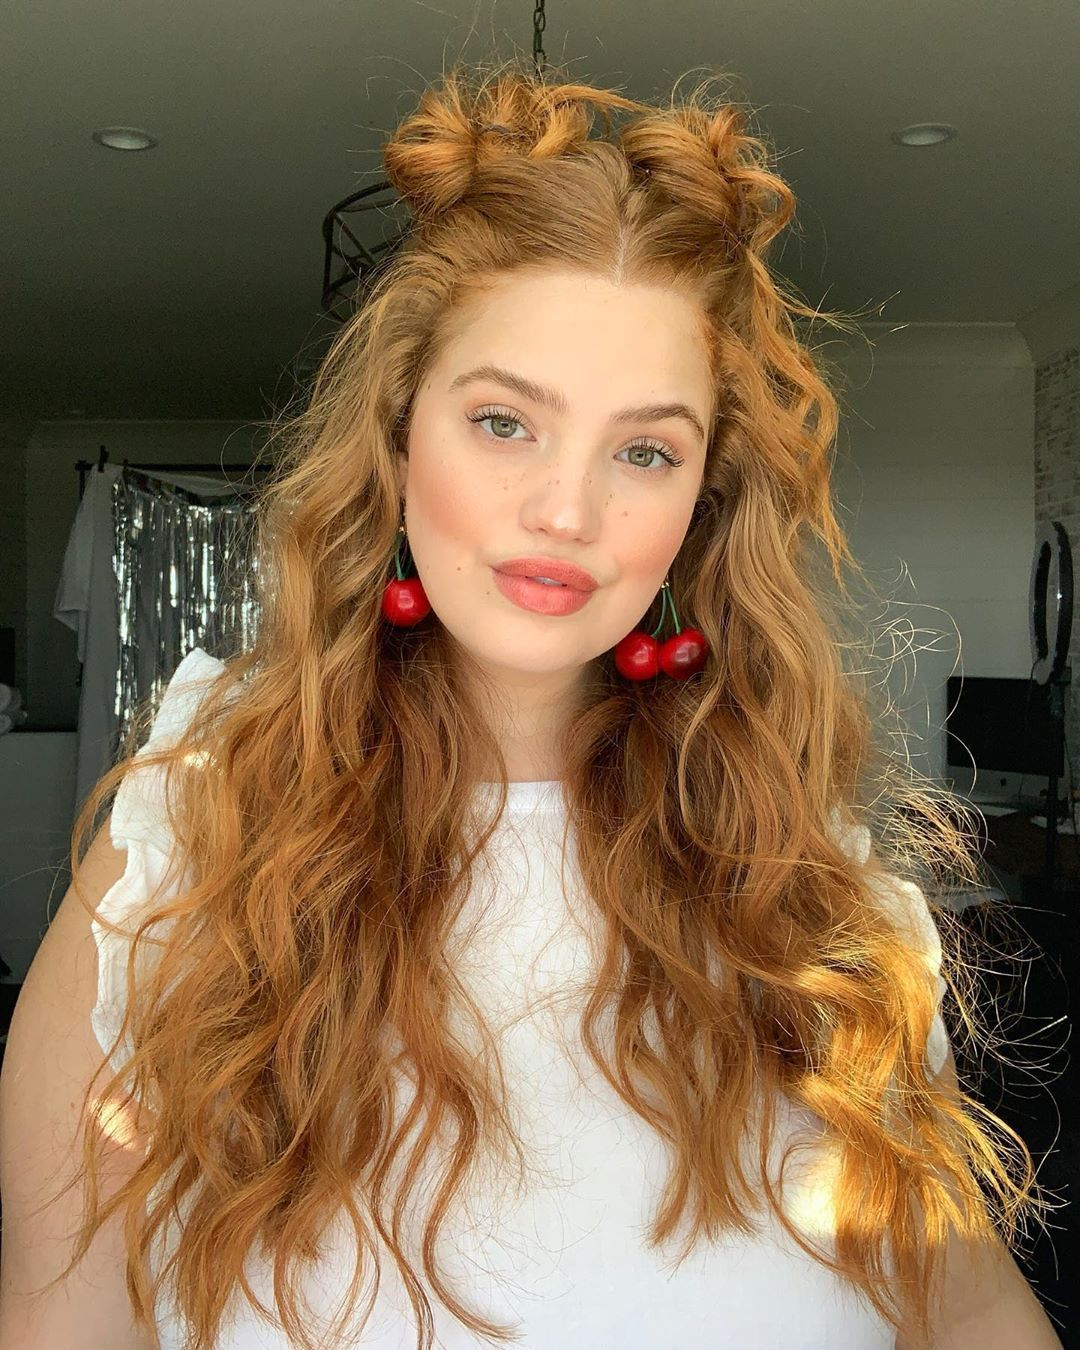 Bree Kish On Instagram Red Hair Model Strawberry Blonde Hair Red Hair Outfits